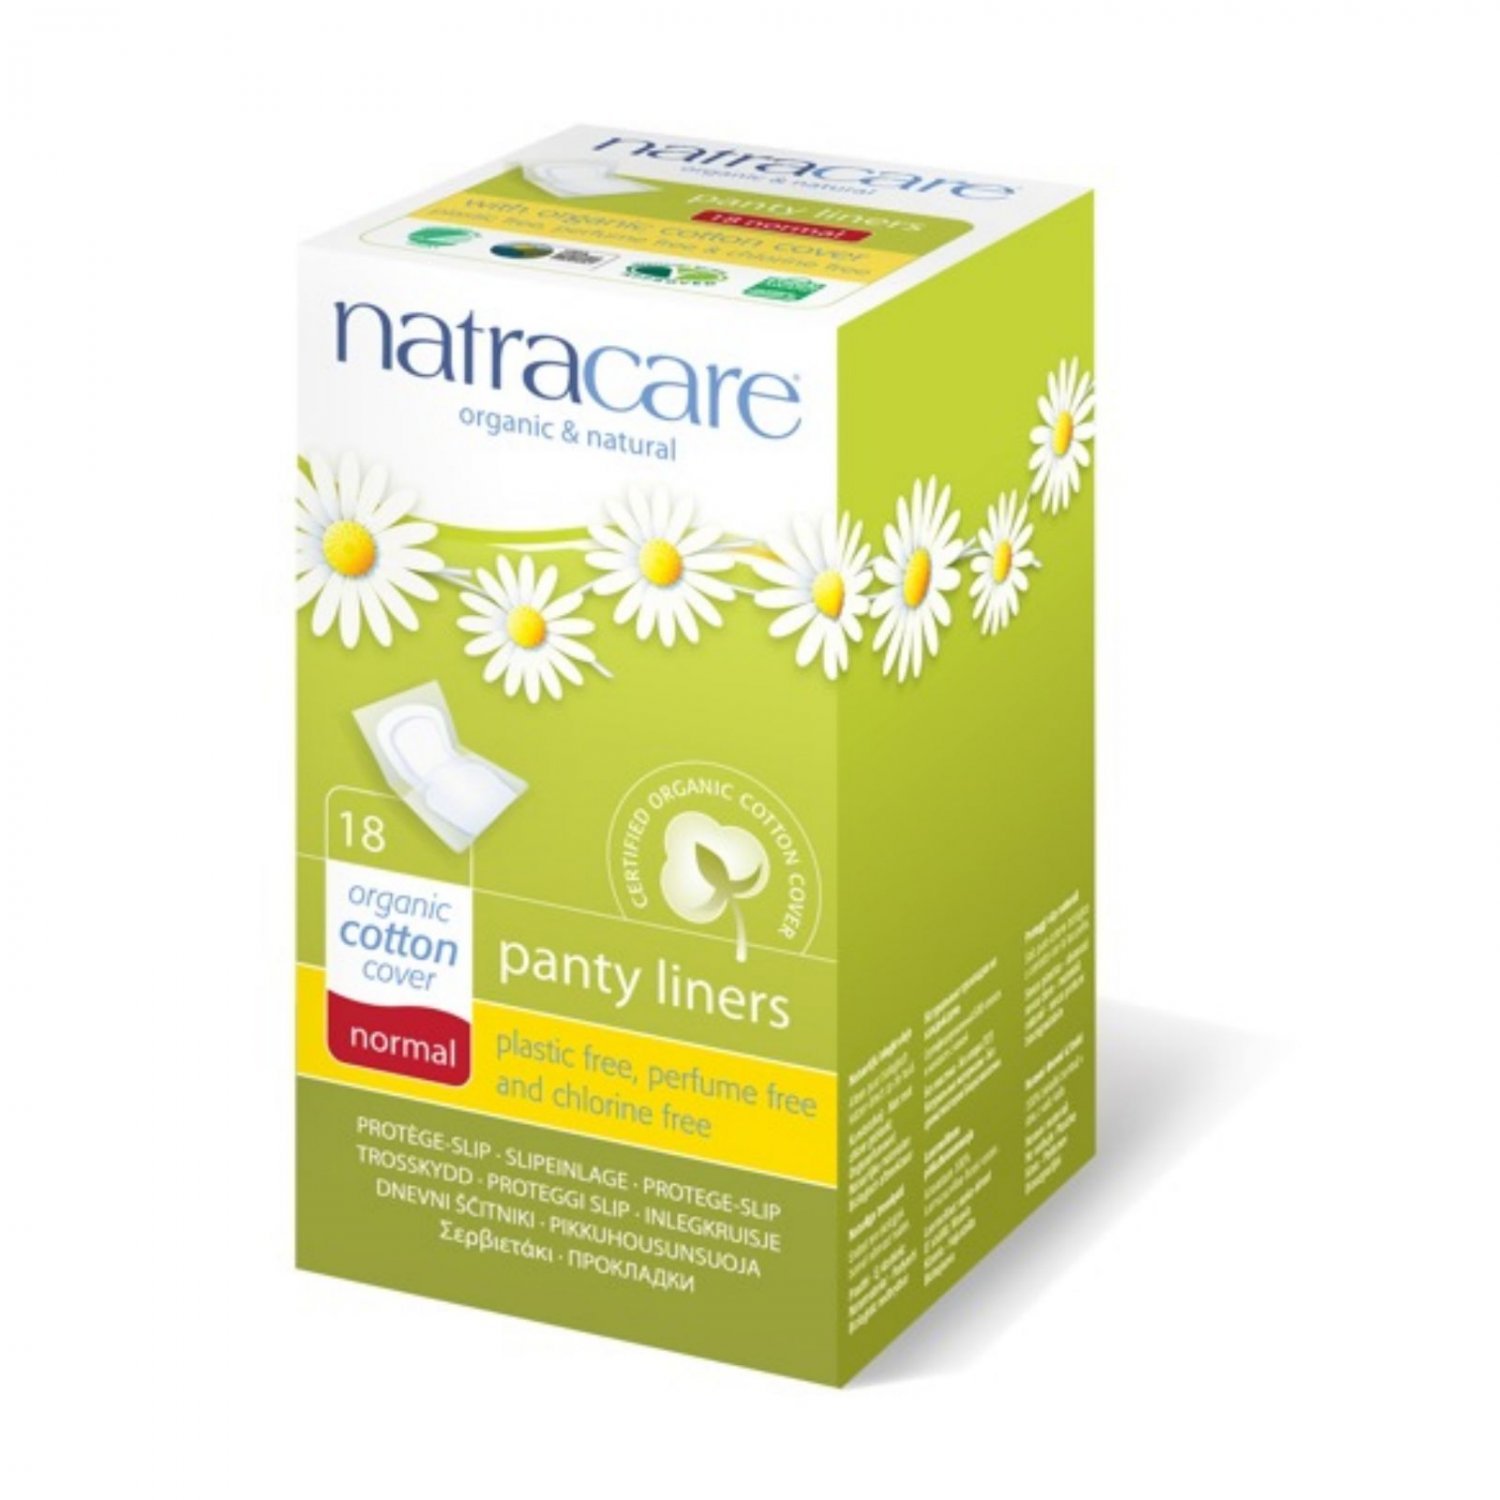 Natracare Panty Liner - Normal Wrapped - 18 ct